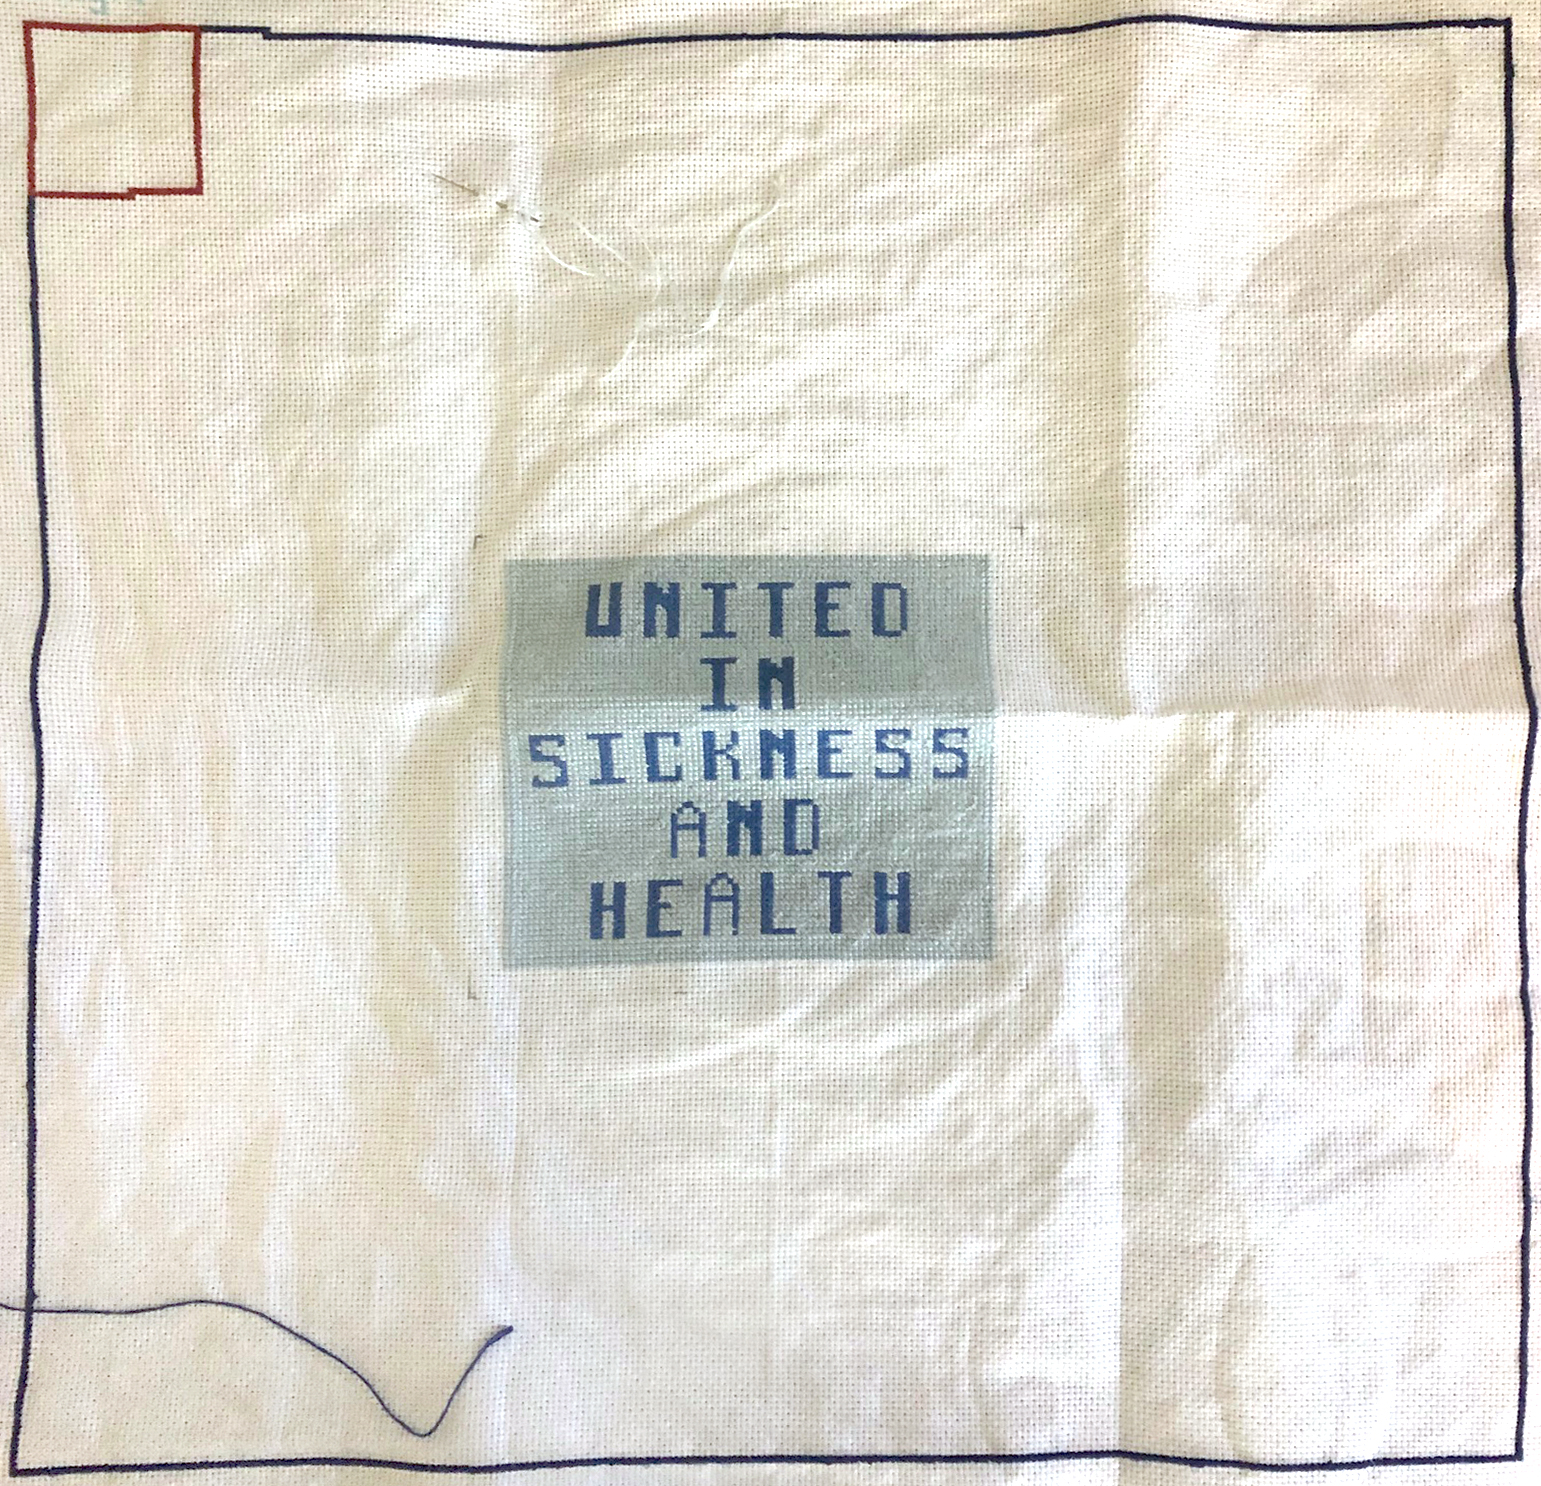 Square stitched with text: 'United in Sickness and Health'.